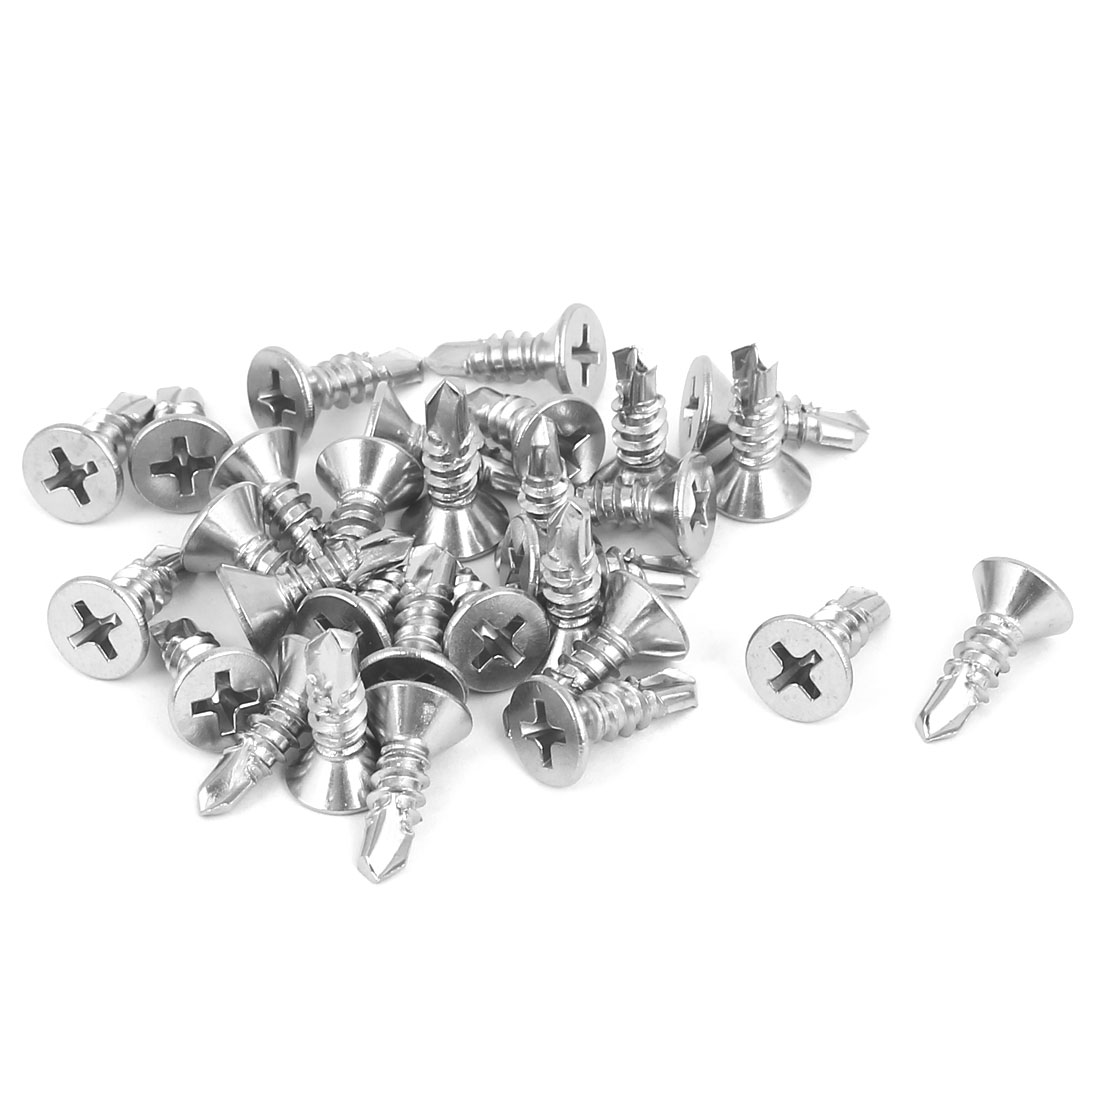 M4.8 x 16mm 410 Stainless Steel Countersunk Head Self Drilling Screws 30 Pcs